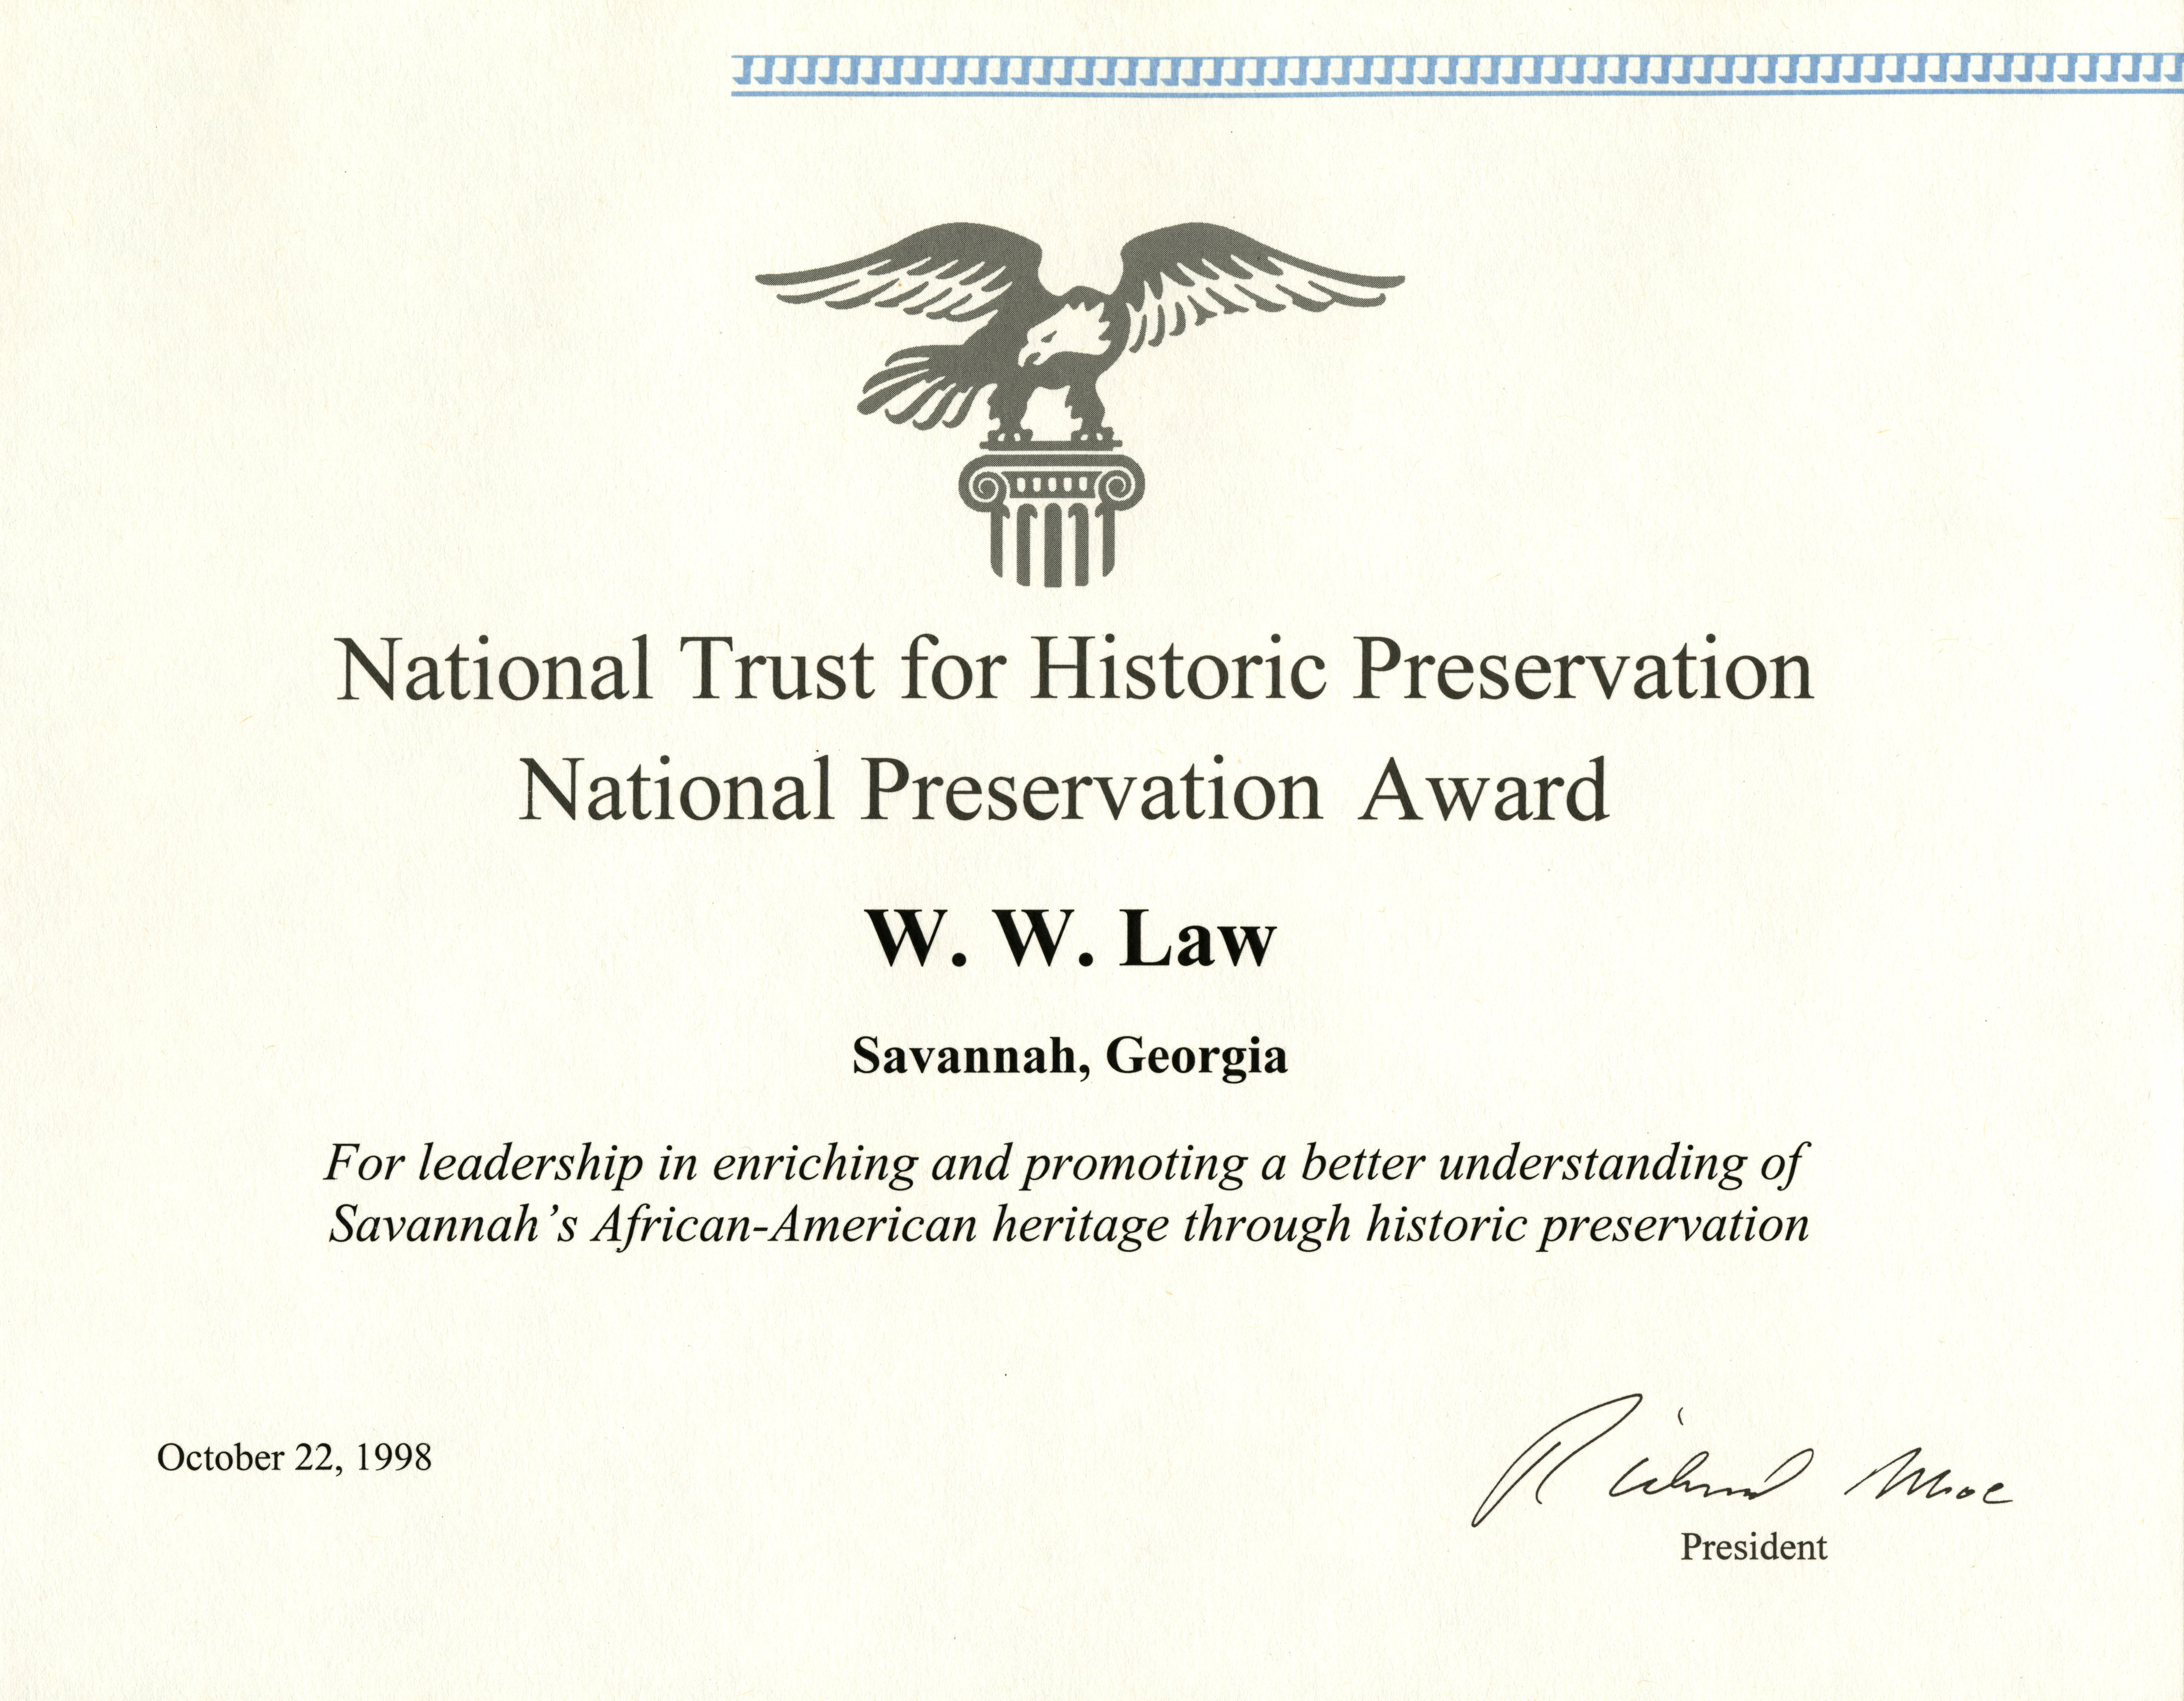 1121-104-0008_1_National Preservation Award_1998.jpg